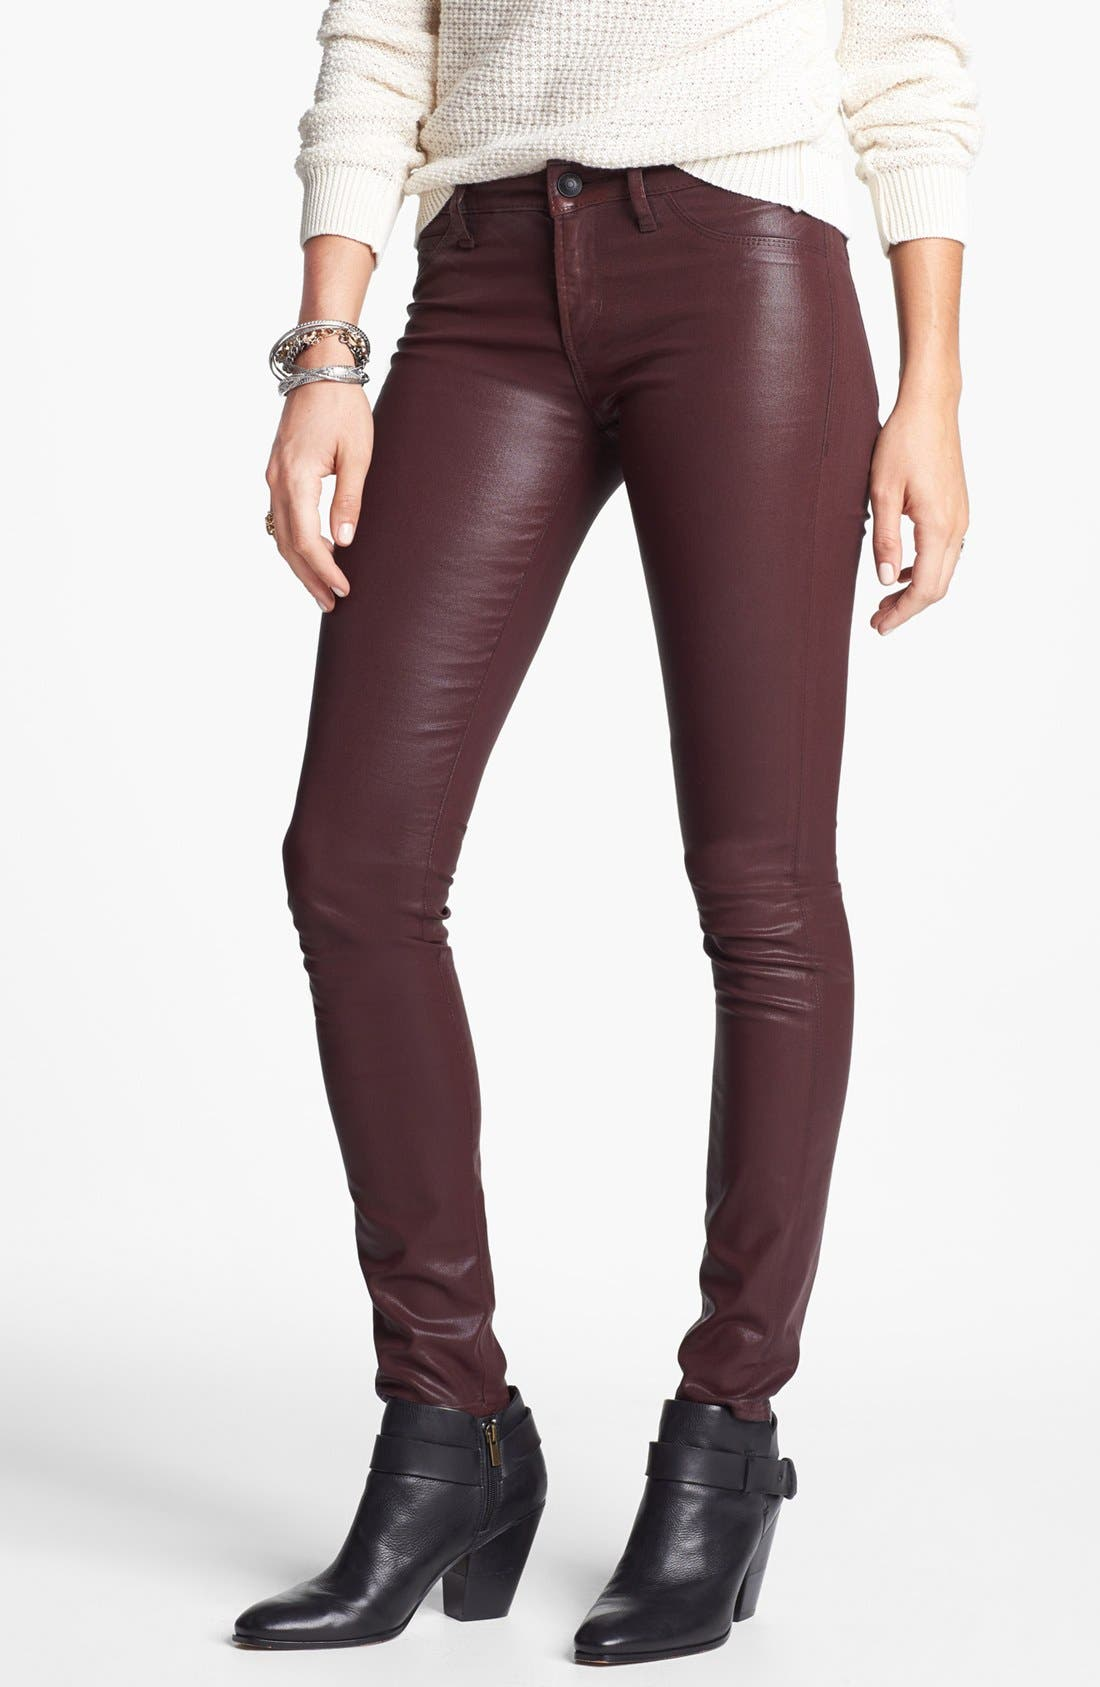 Main Image - Articles of Society 'Mya' Coated Skinny Jeans (Ox Blood) (Online Only)